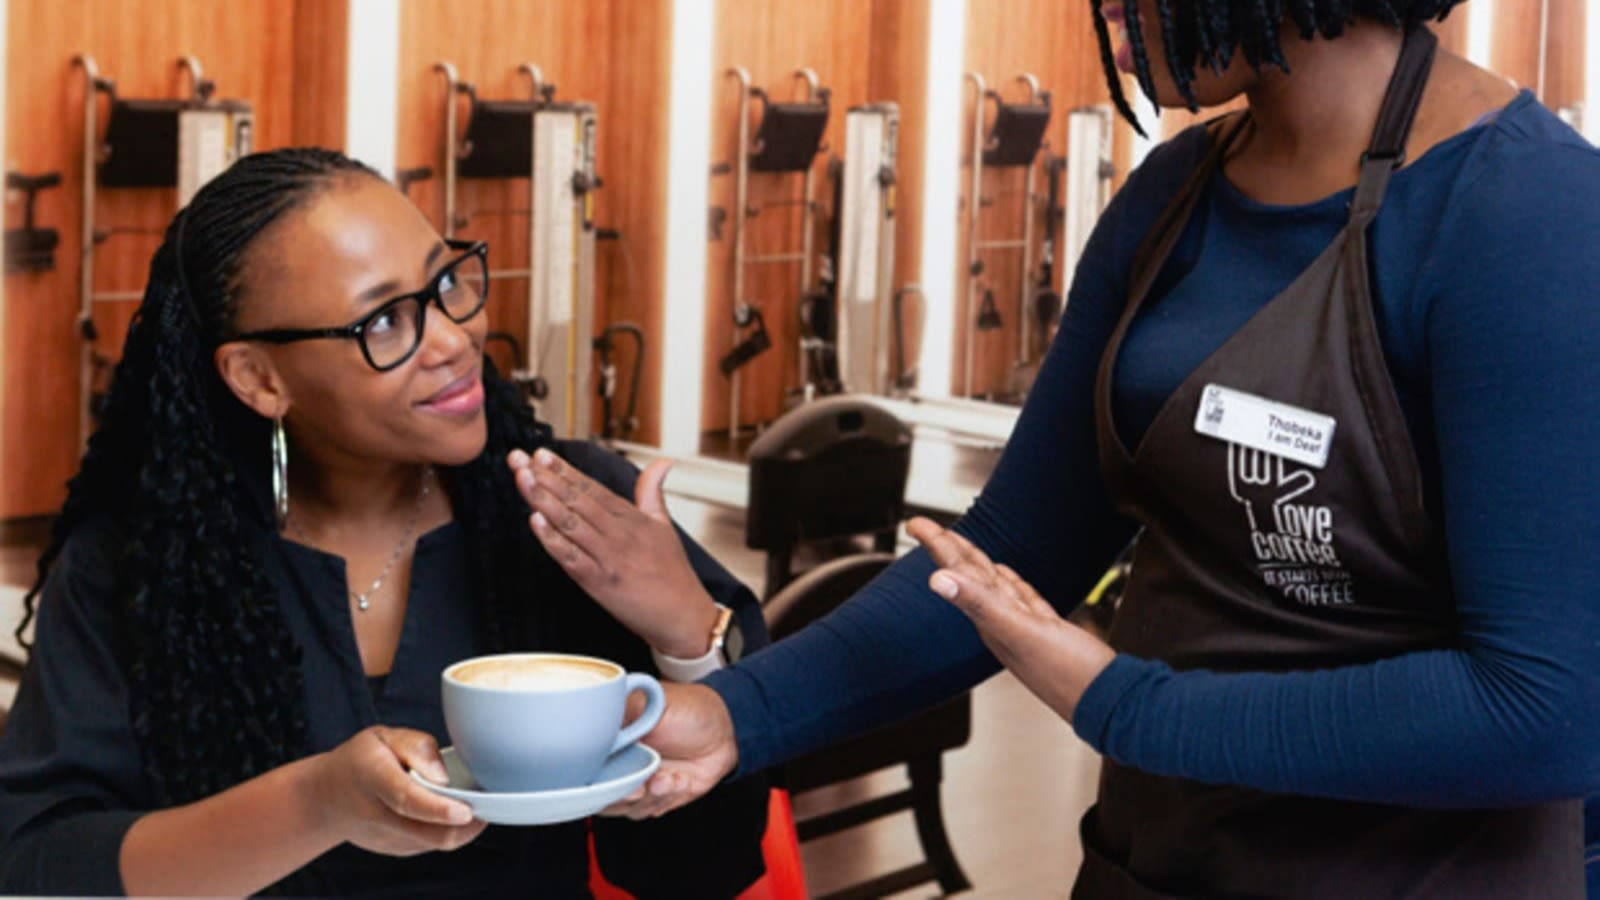 A woman signs 'thank you' to a barista with hearing impairment at the in-office coffee bar at Virgin Active South Africa's national head office as she receives her drink